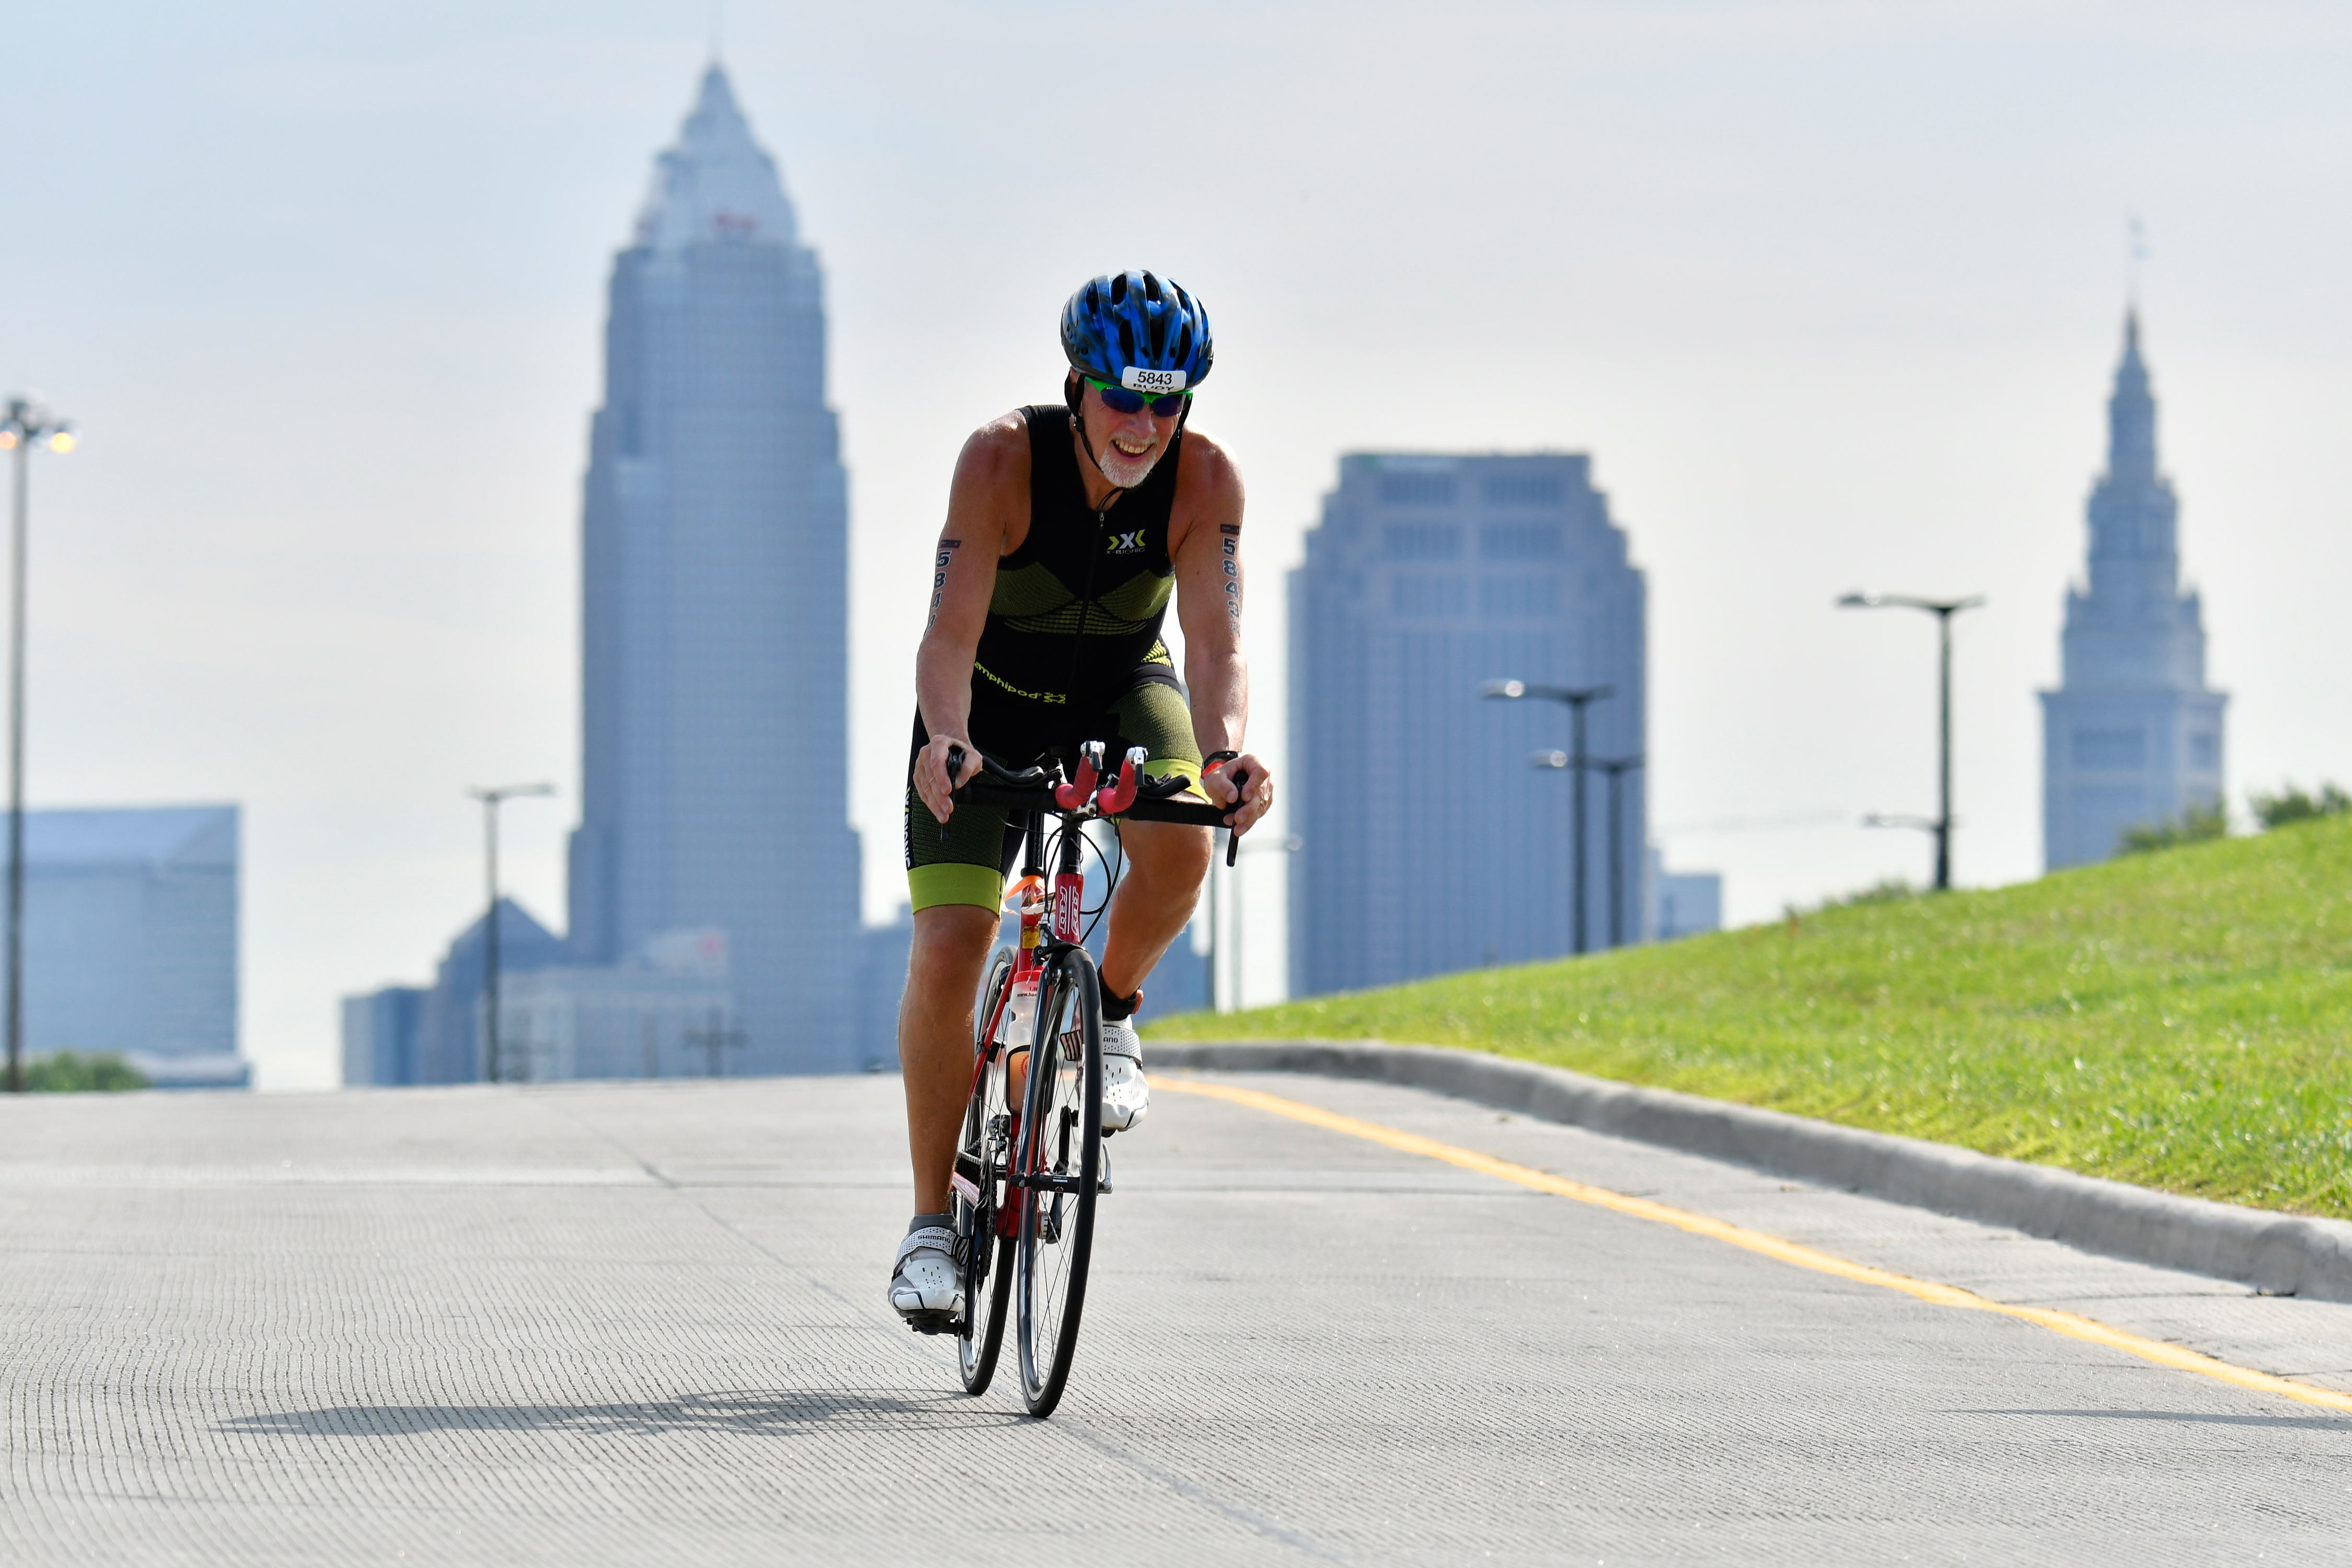 2018 USA Triathlon Age Group National Championships Olympic DistanceAugust 12, 2018